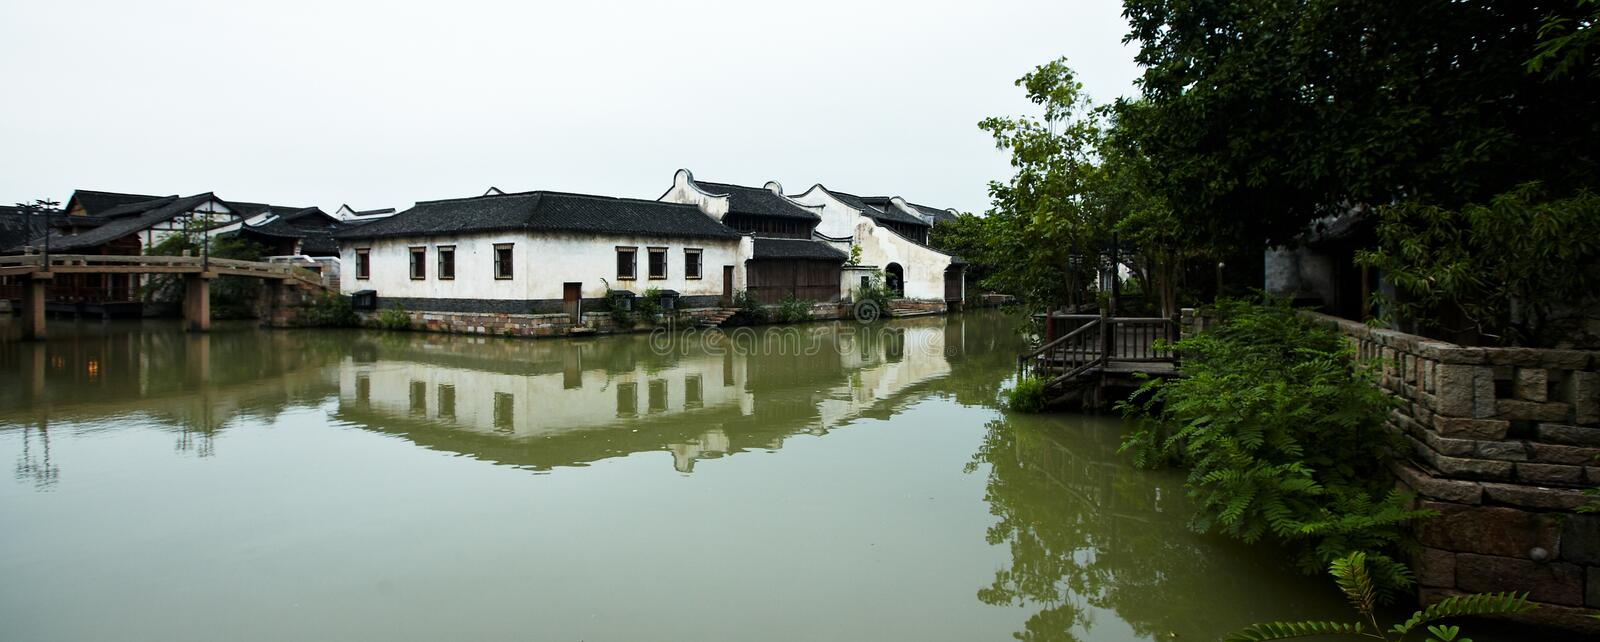 The Chinese watery town buildings. And marina by the river ,wuzhen,jiangsu,China stock images